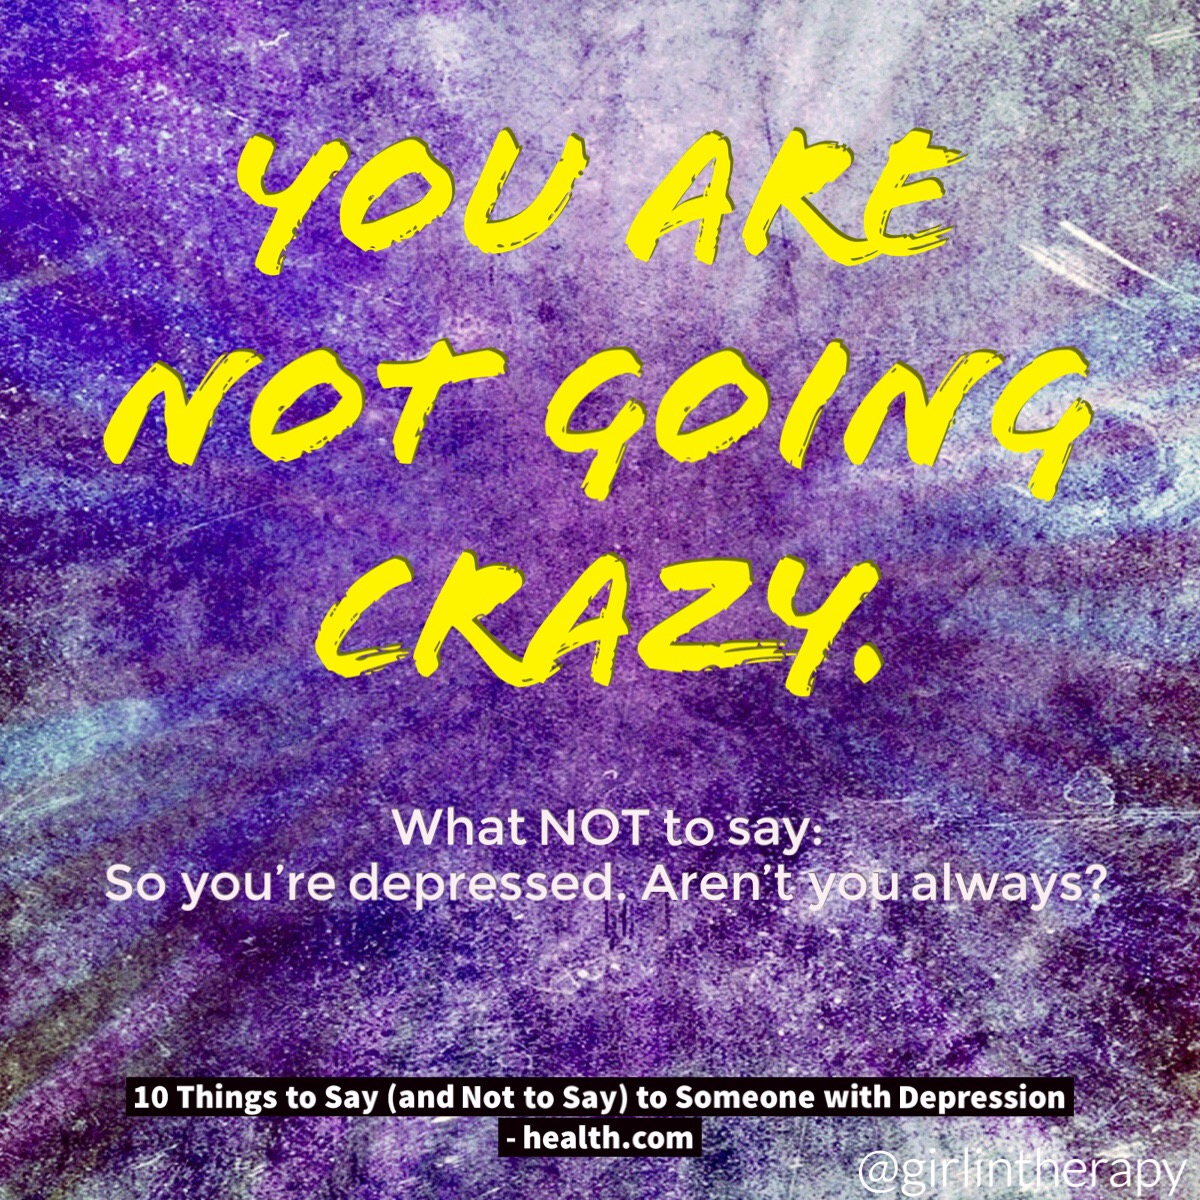 How to help someone in Depression - You are not going crazy